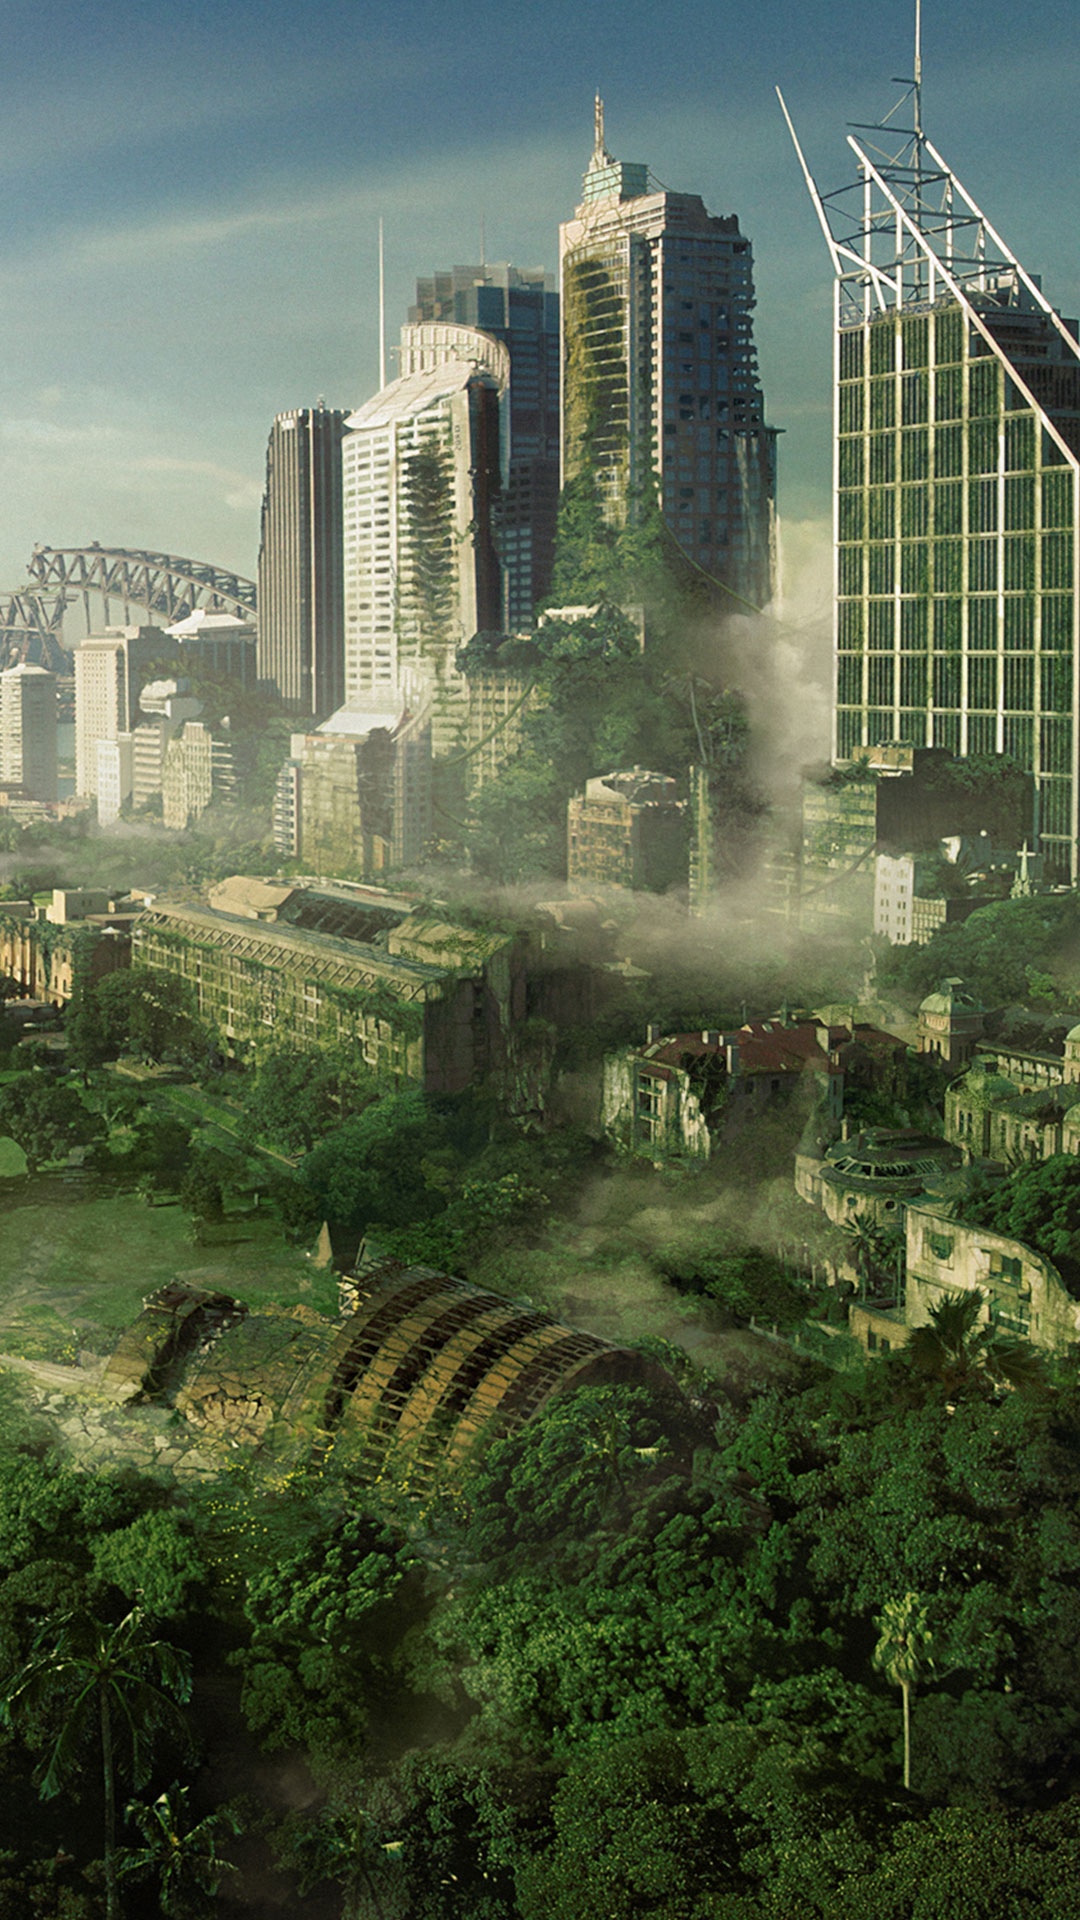 Futuristic Matte Painting Of A City - a calm iPhone wallpaper